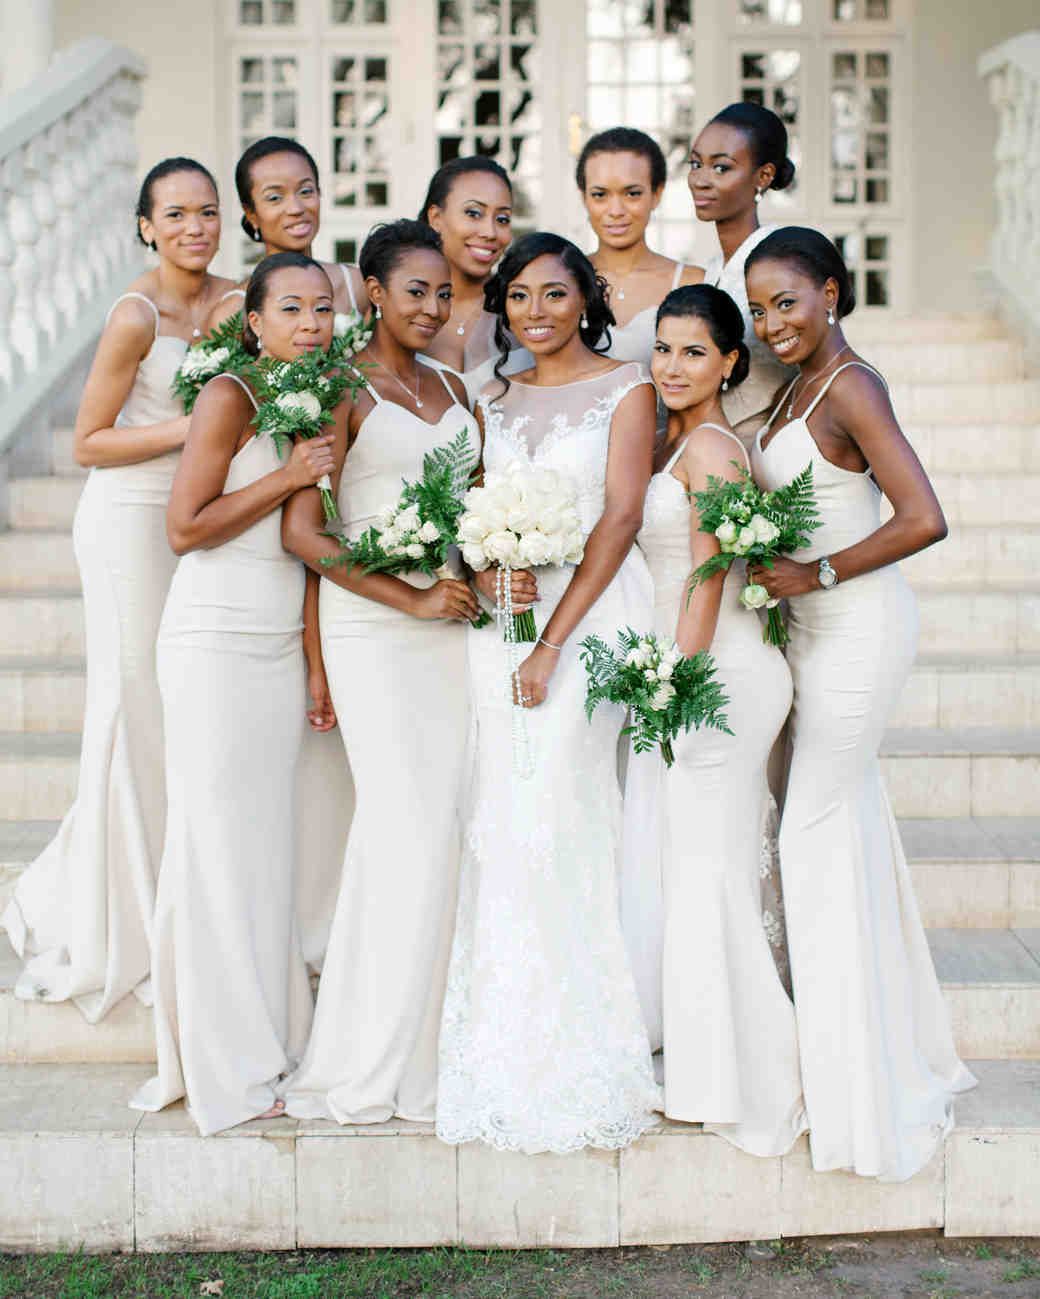 chloe shayo south africa wedding bridesmaids bride steps